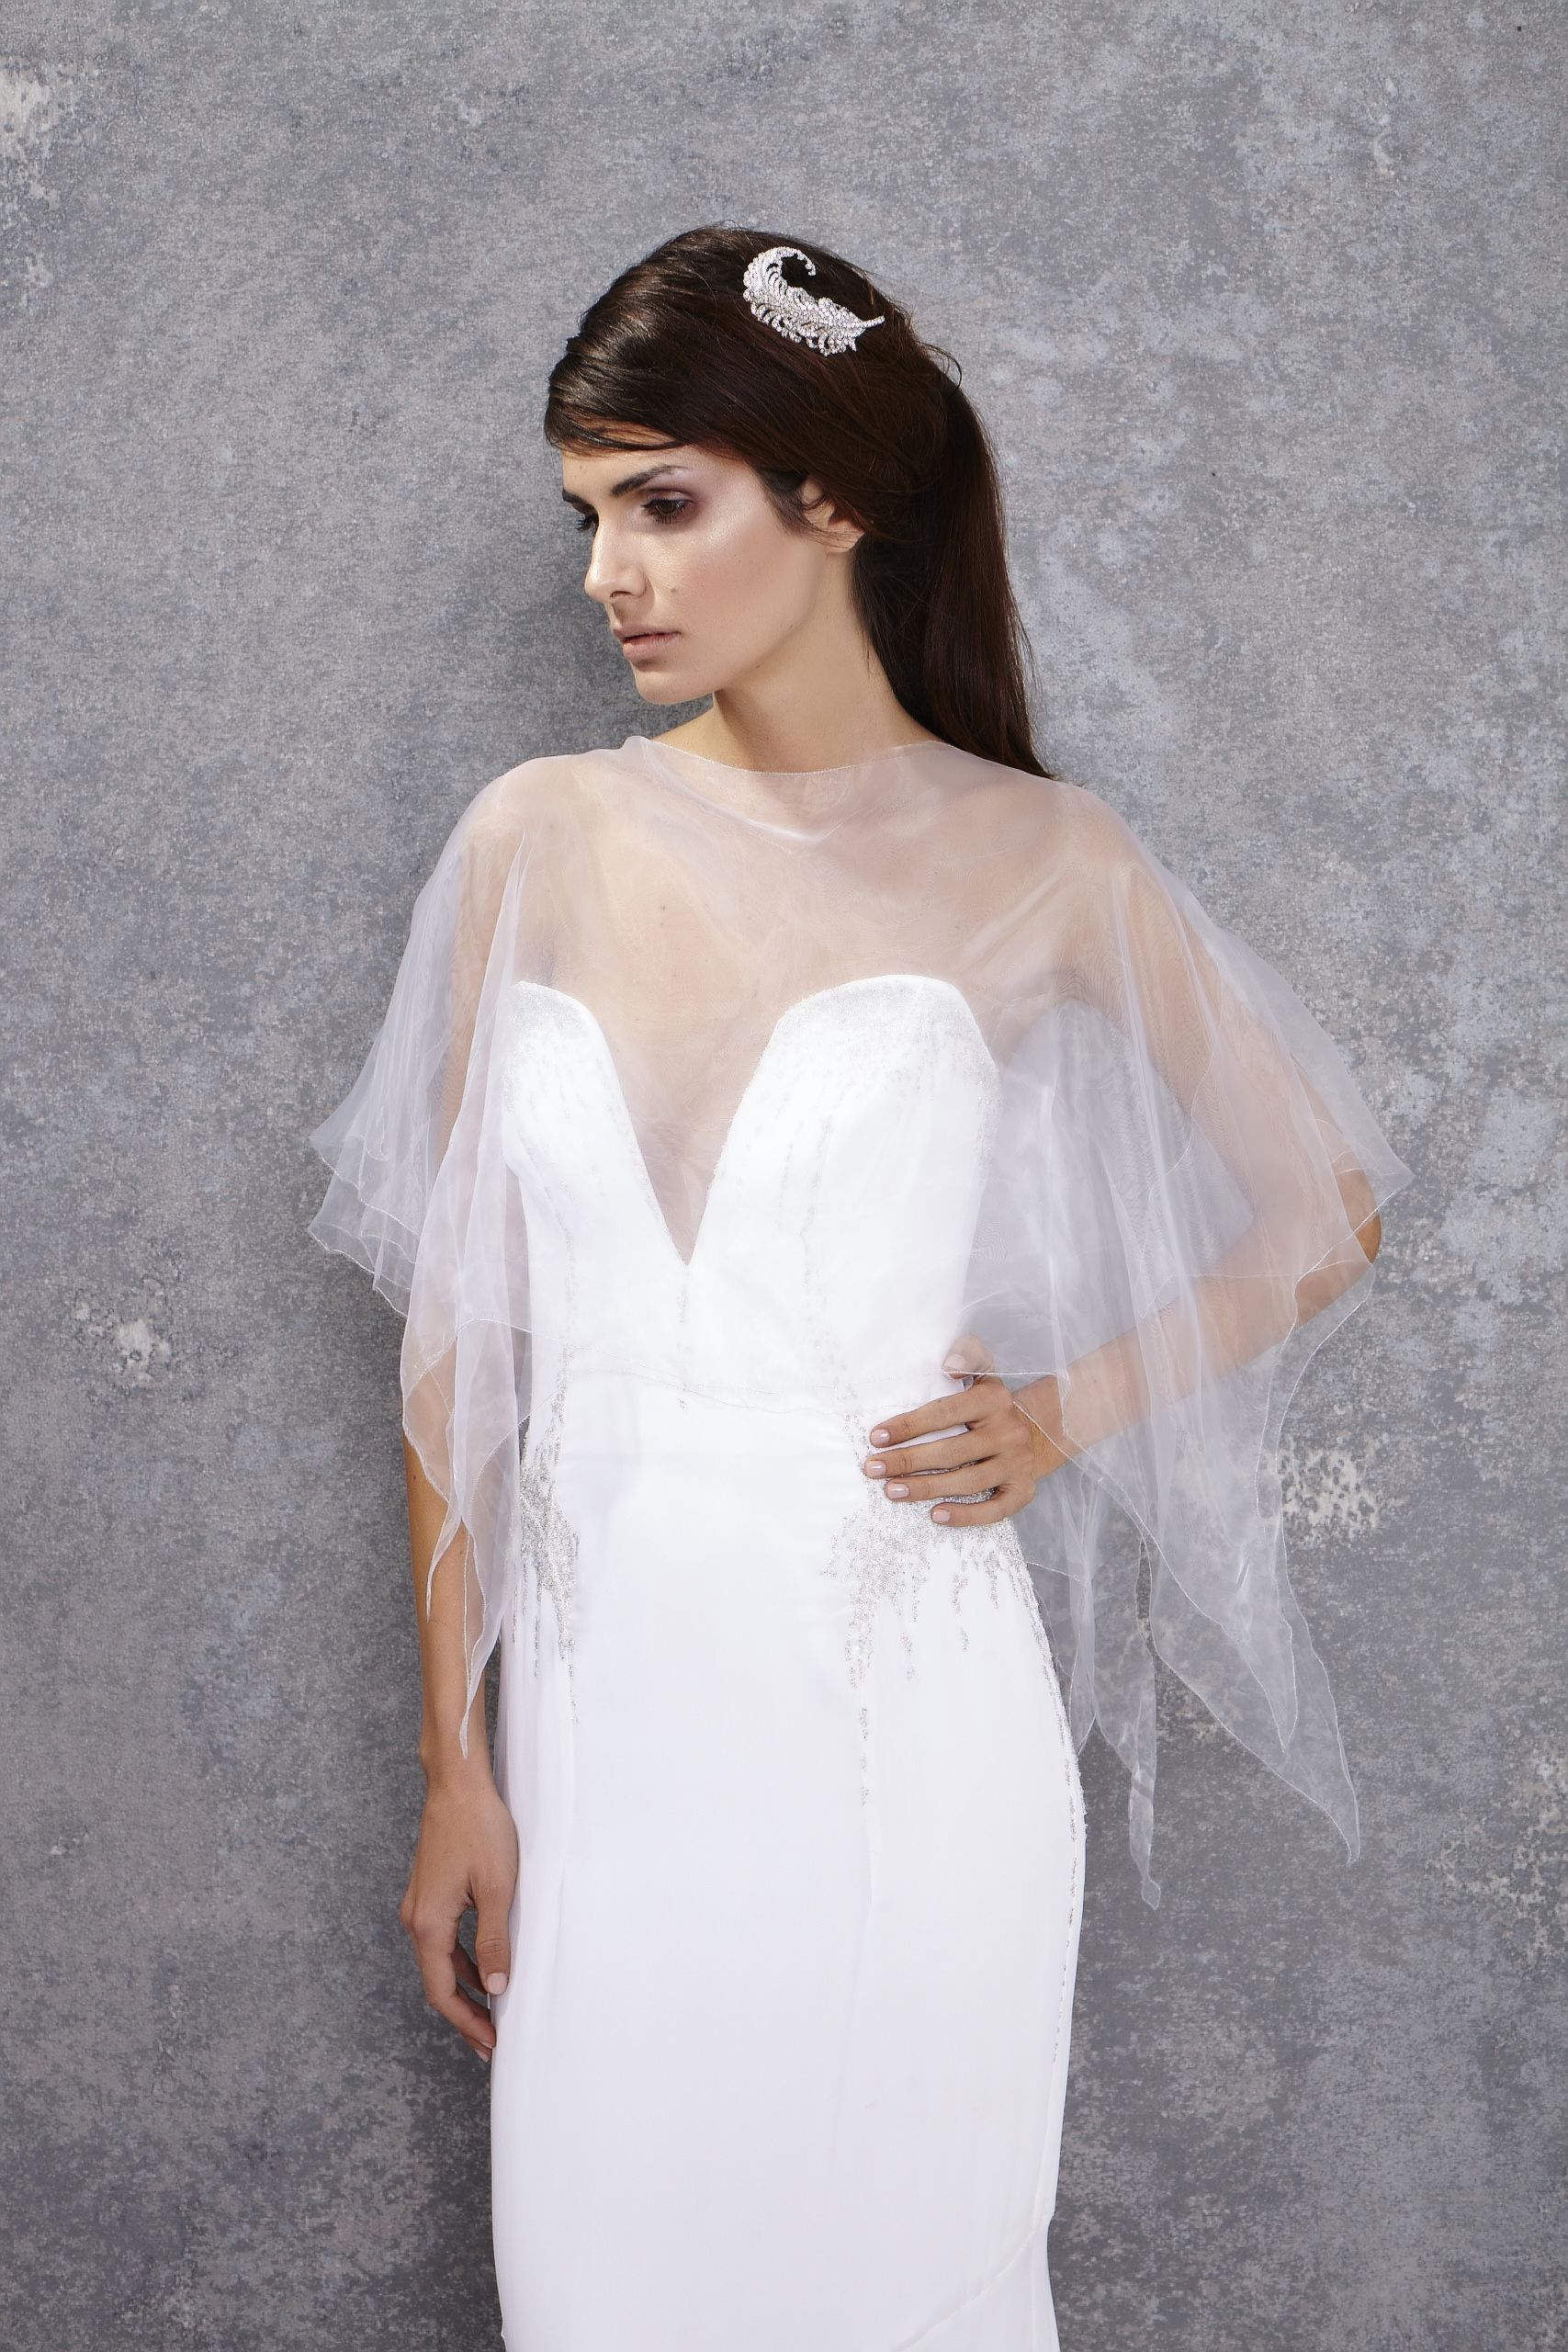 Gyunel bridal couture lookbook photoshoot